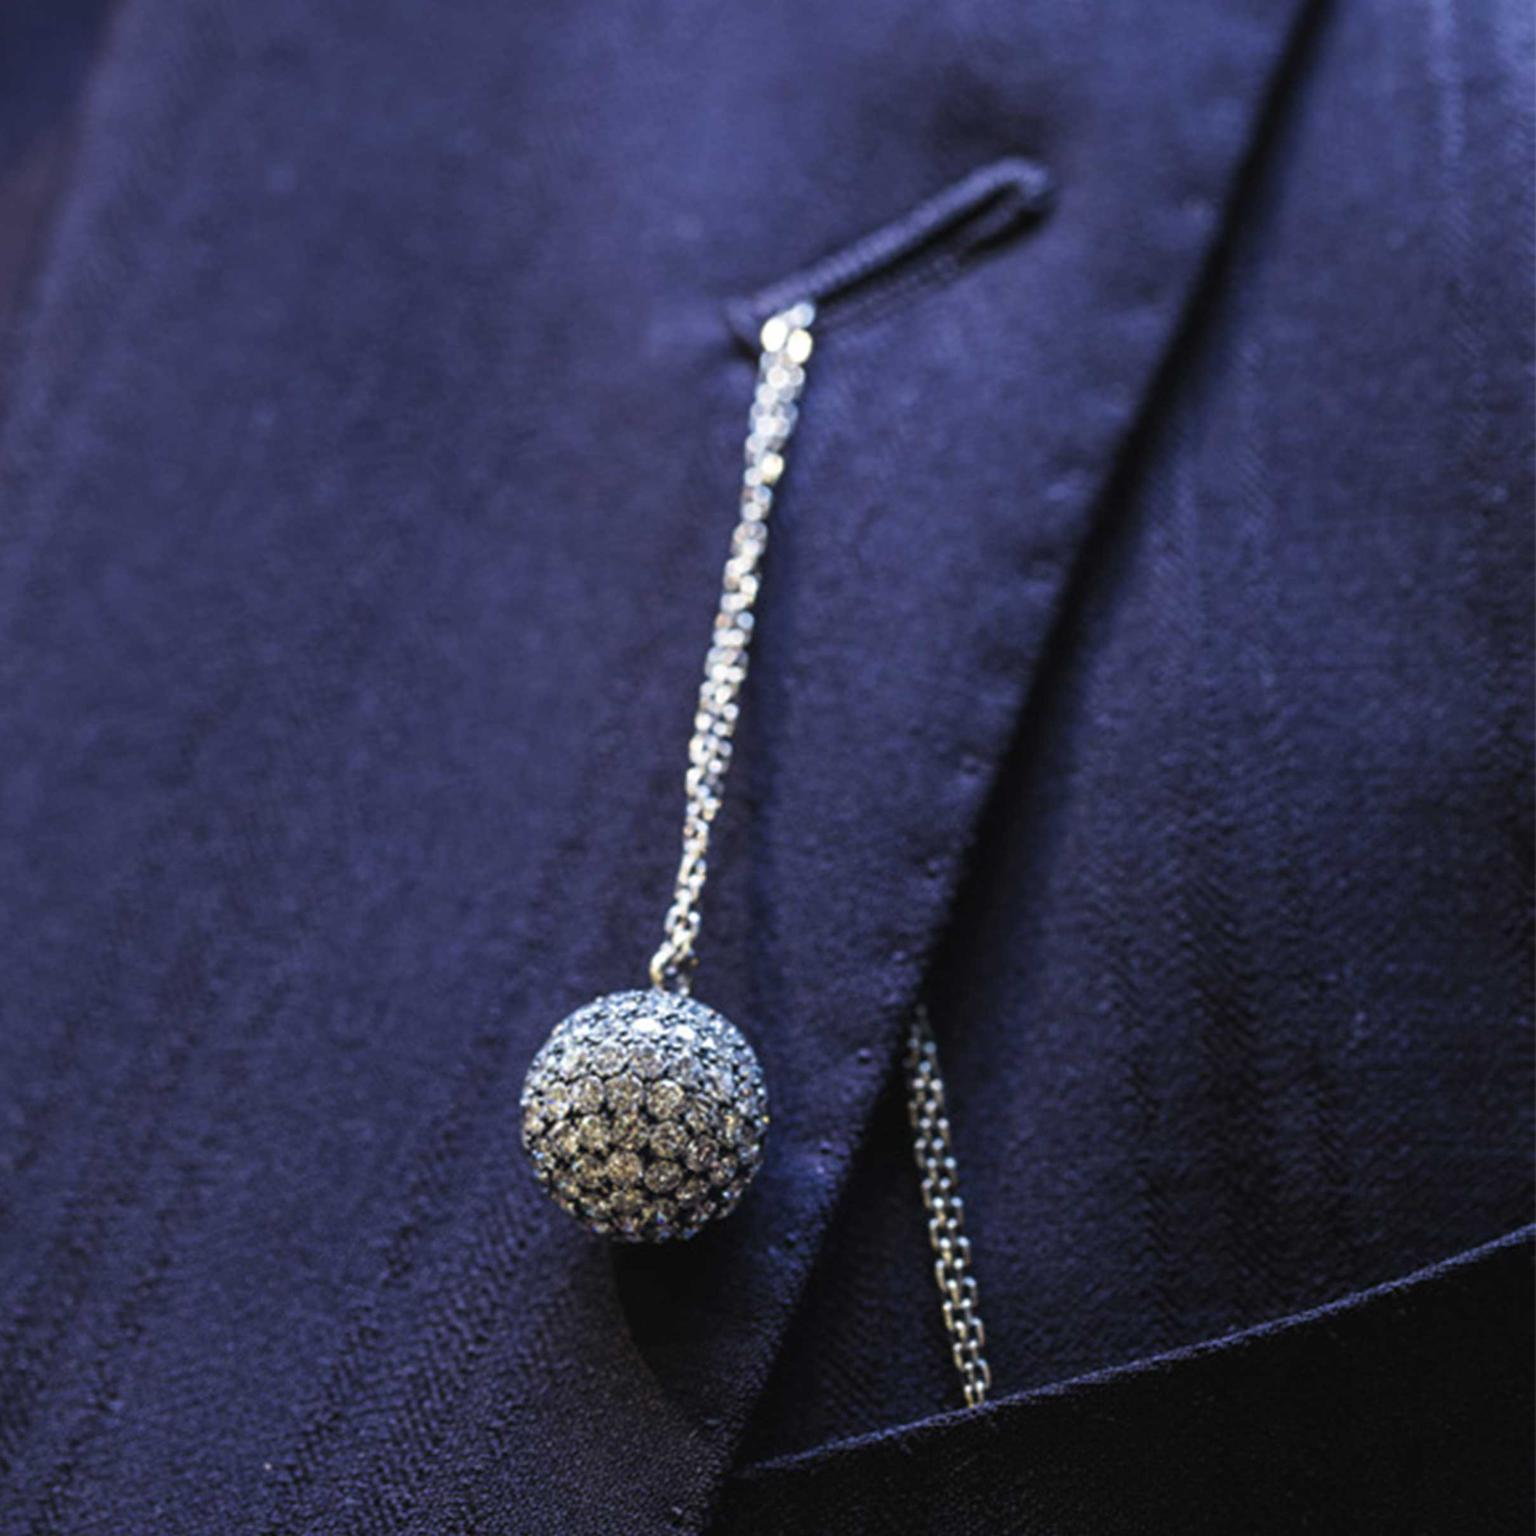 Solange Azagury-Partridge Mirror Ball diamond pendant